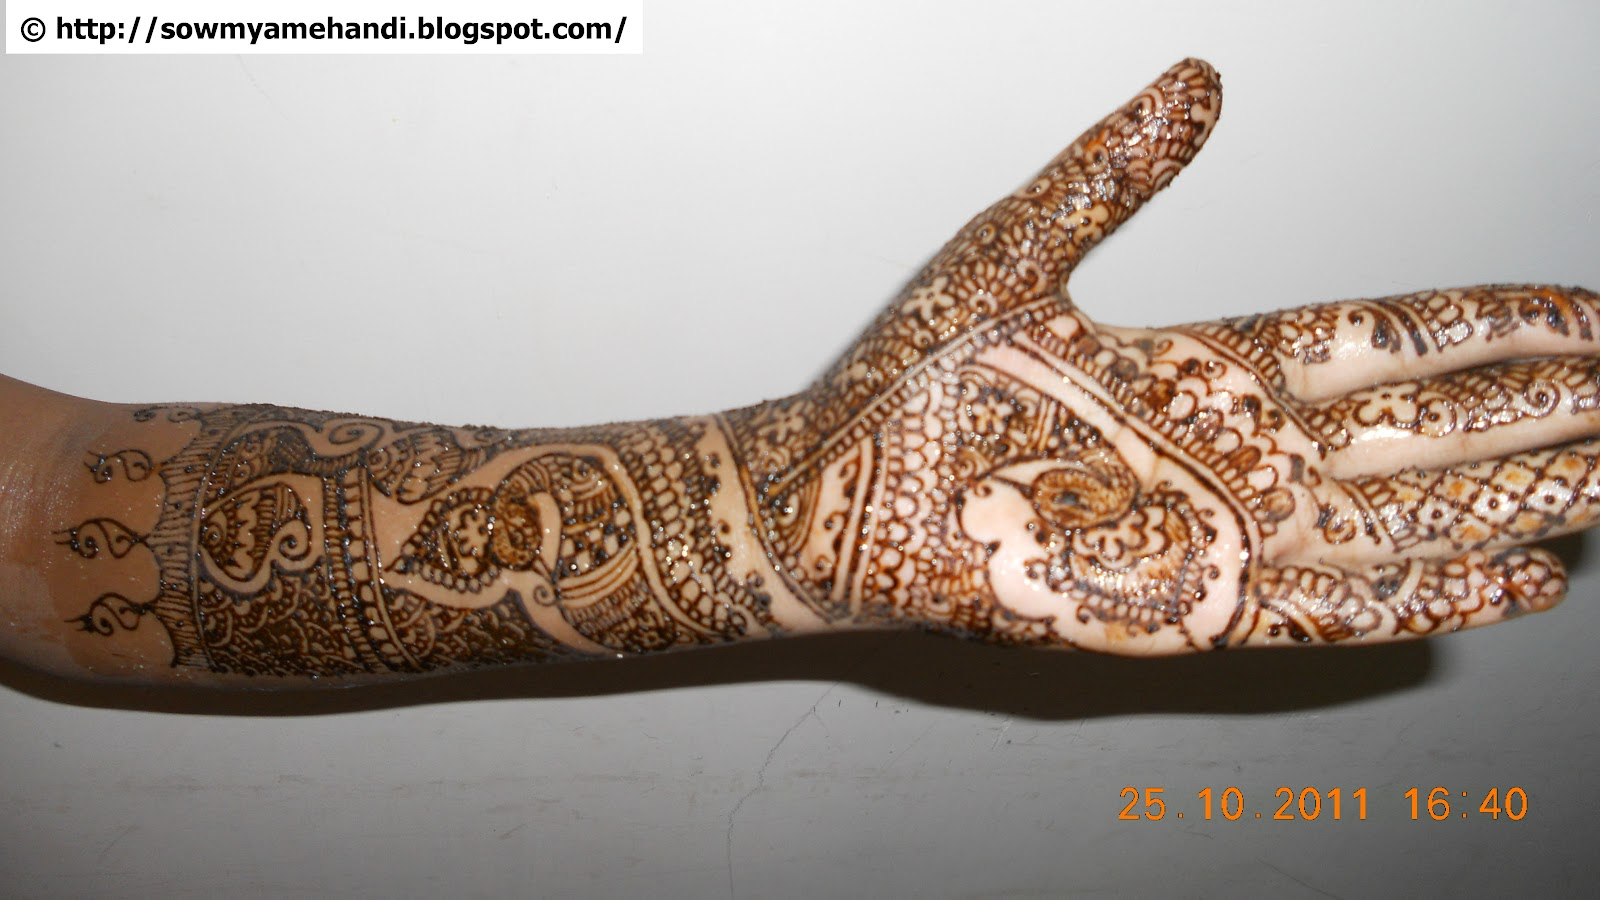 Mehndi Patterns Diwali : Sowmya s mehndi diwali designs